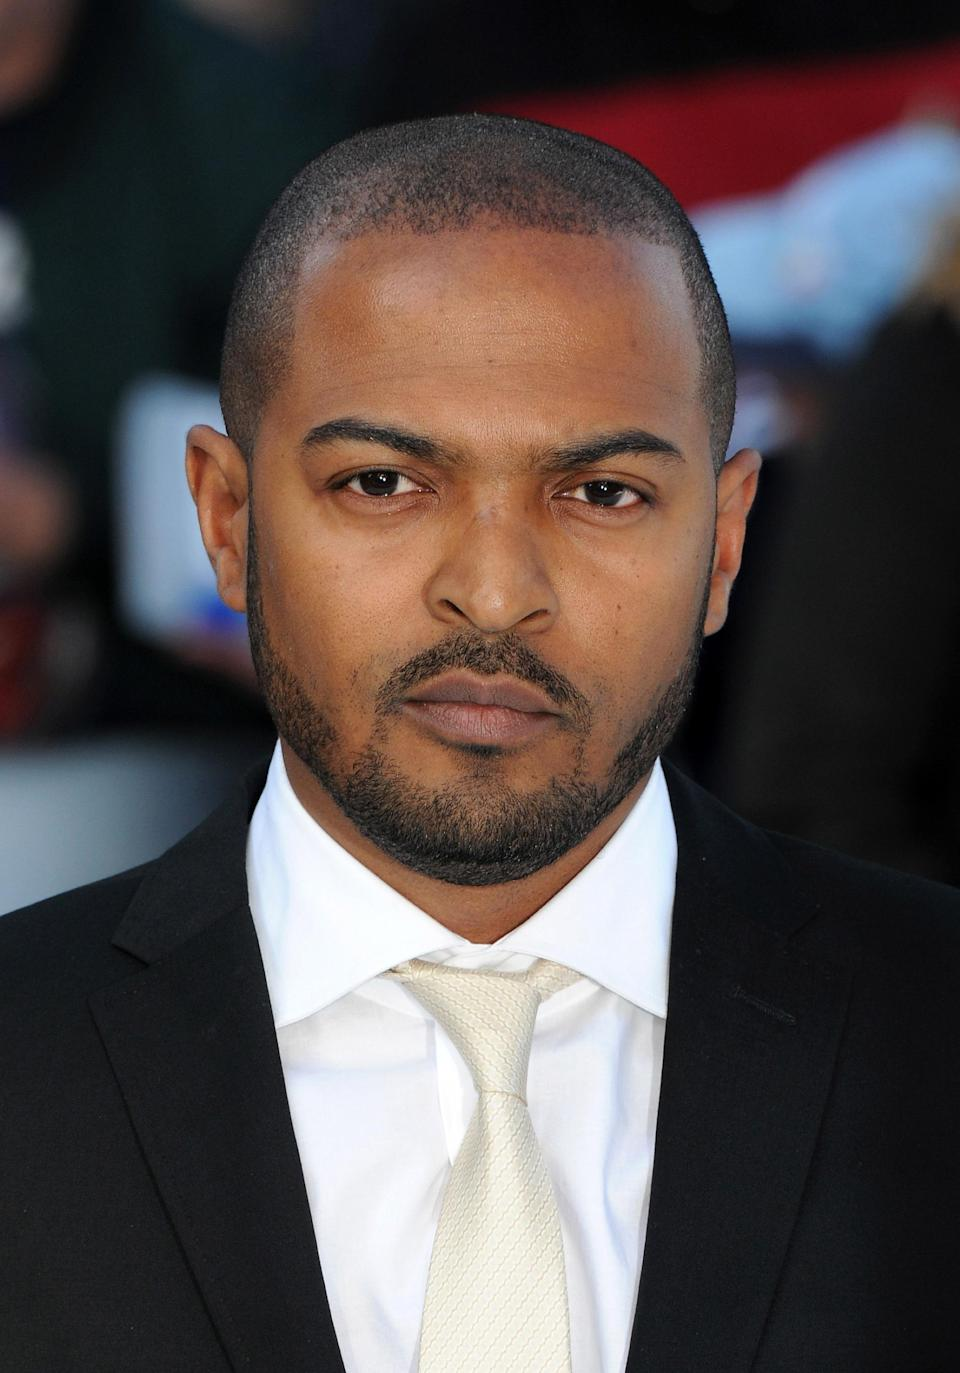 Noel Clarke at the London premiere of 'Star Trek Into Darkness'